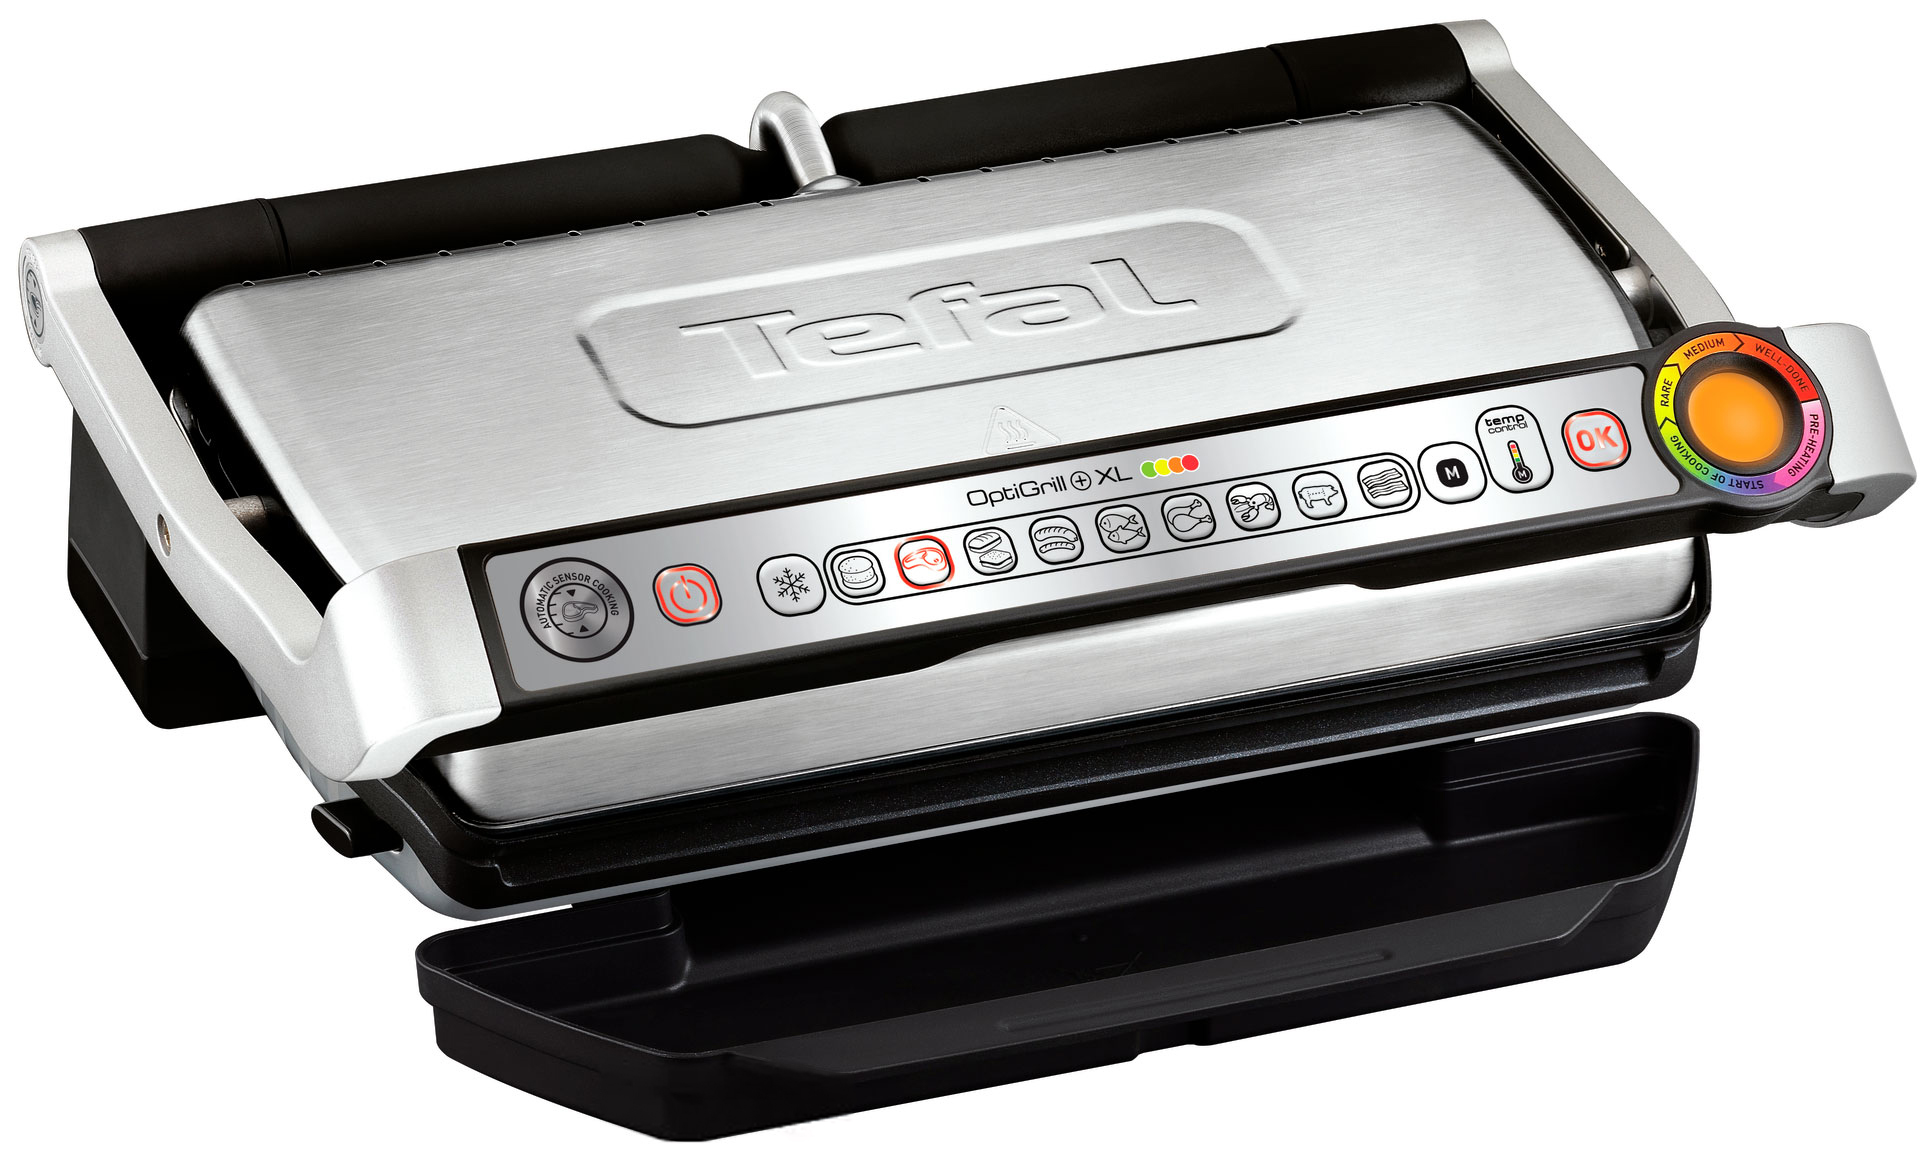 Гриль TEFAL OptiGrill+ XL GC722